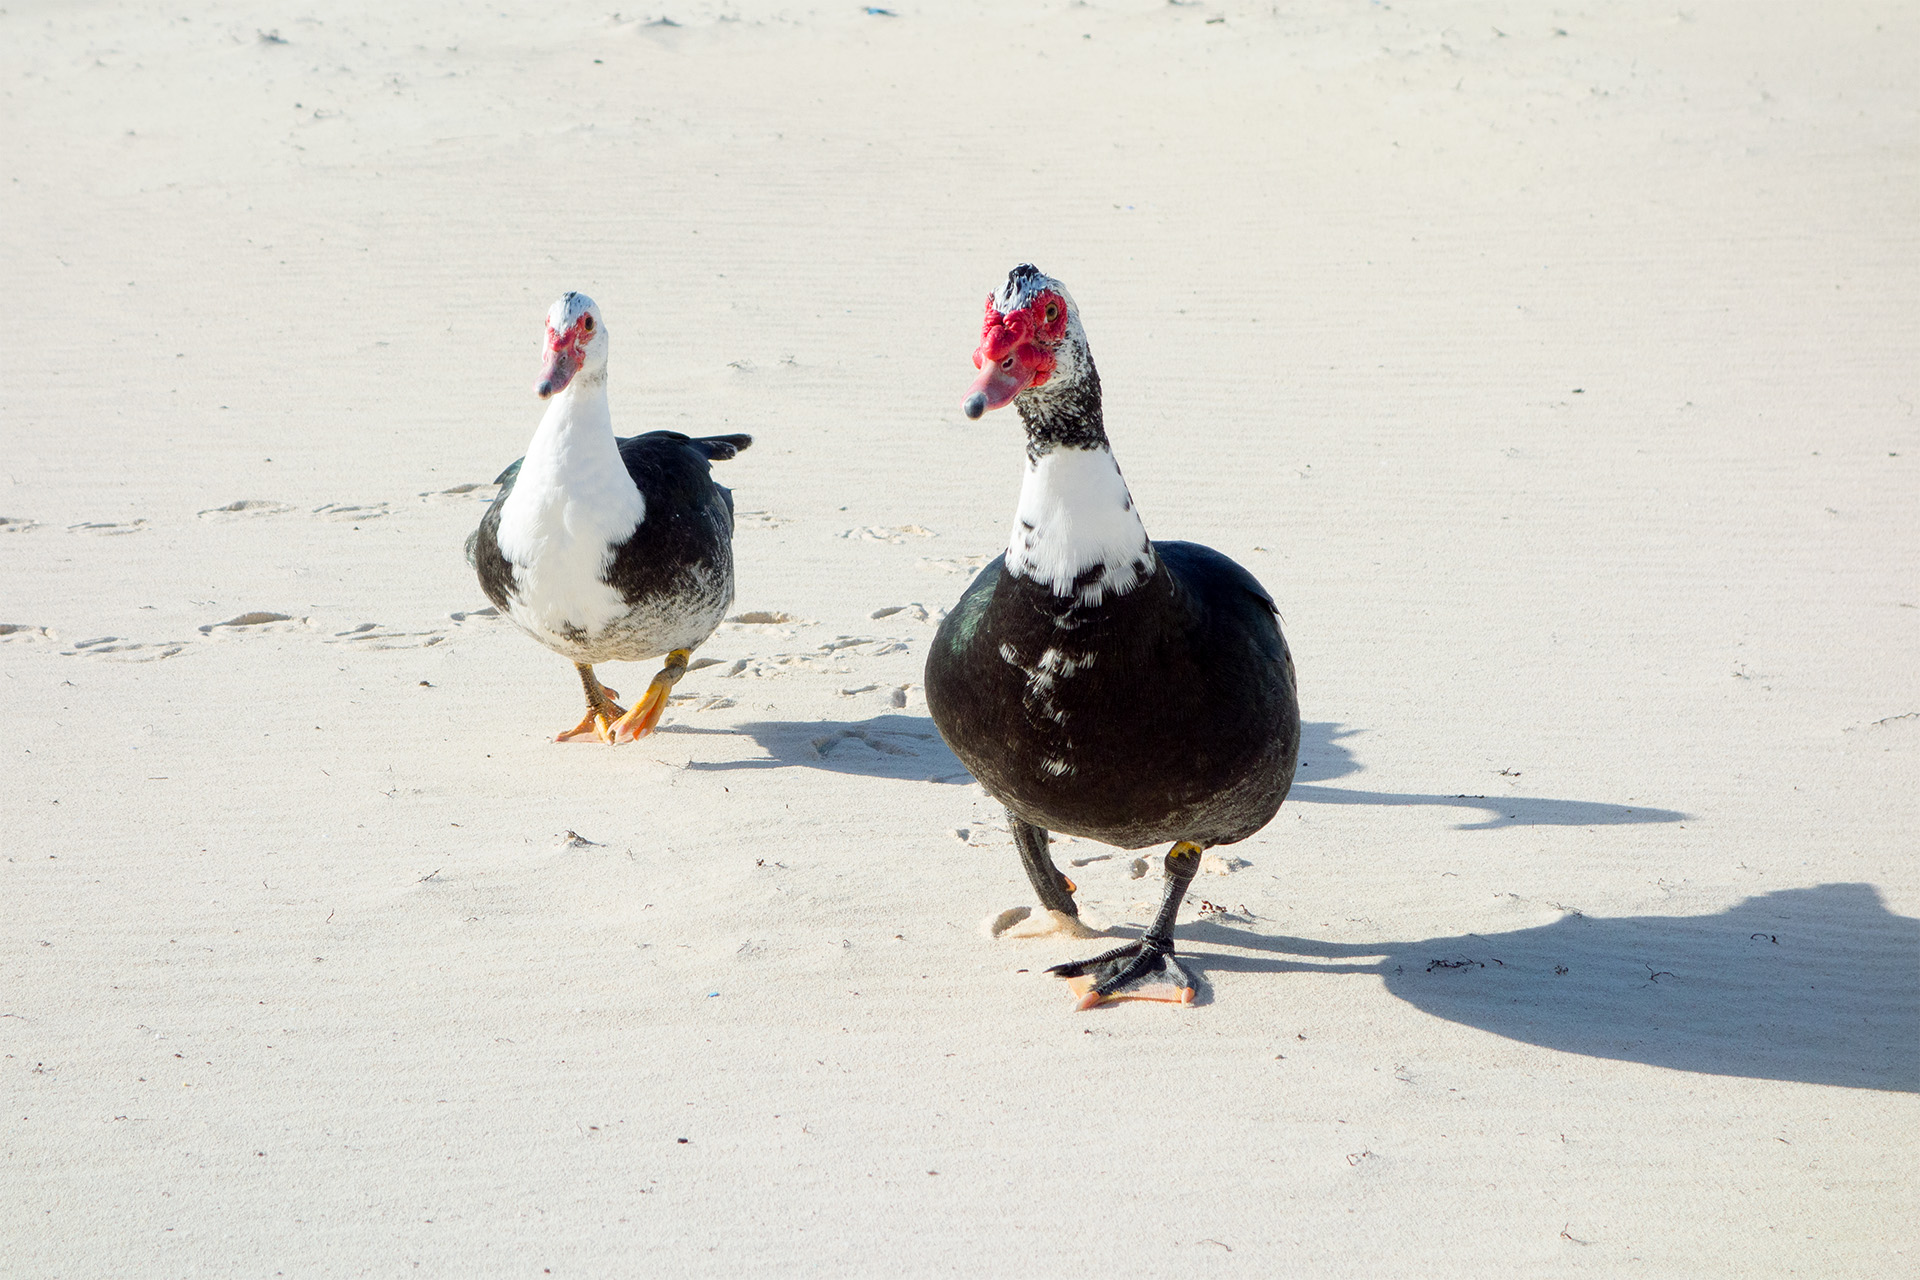 A curious pair of geese